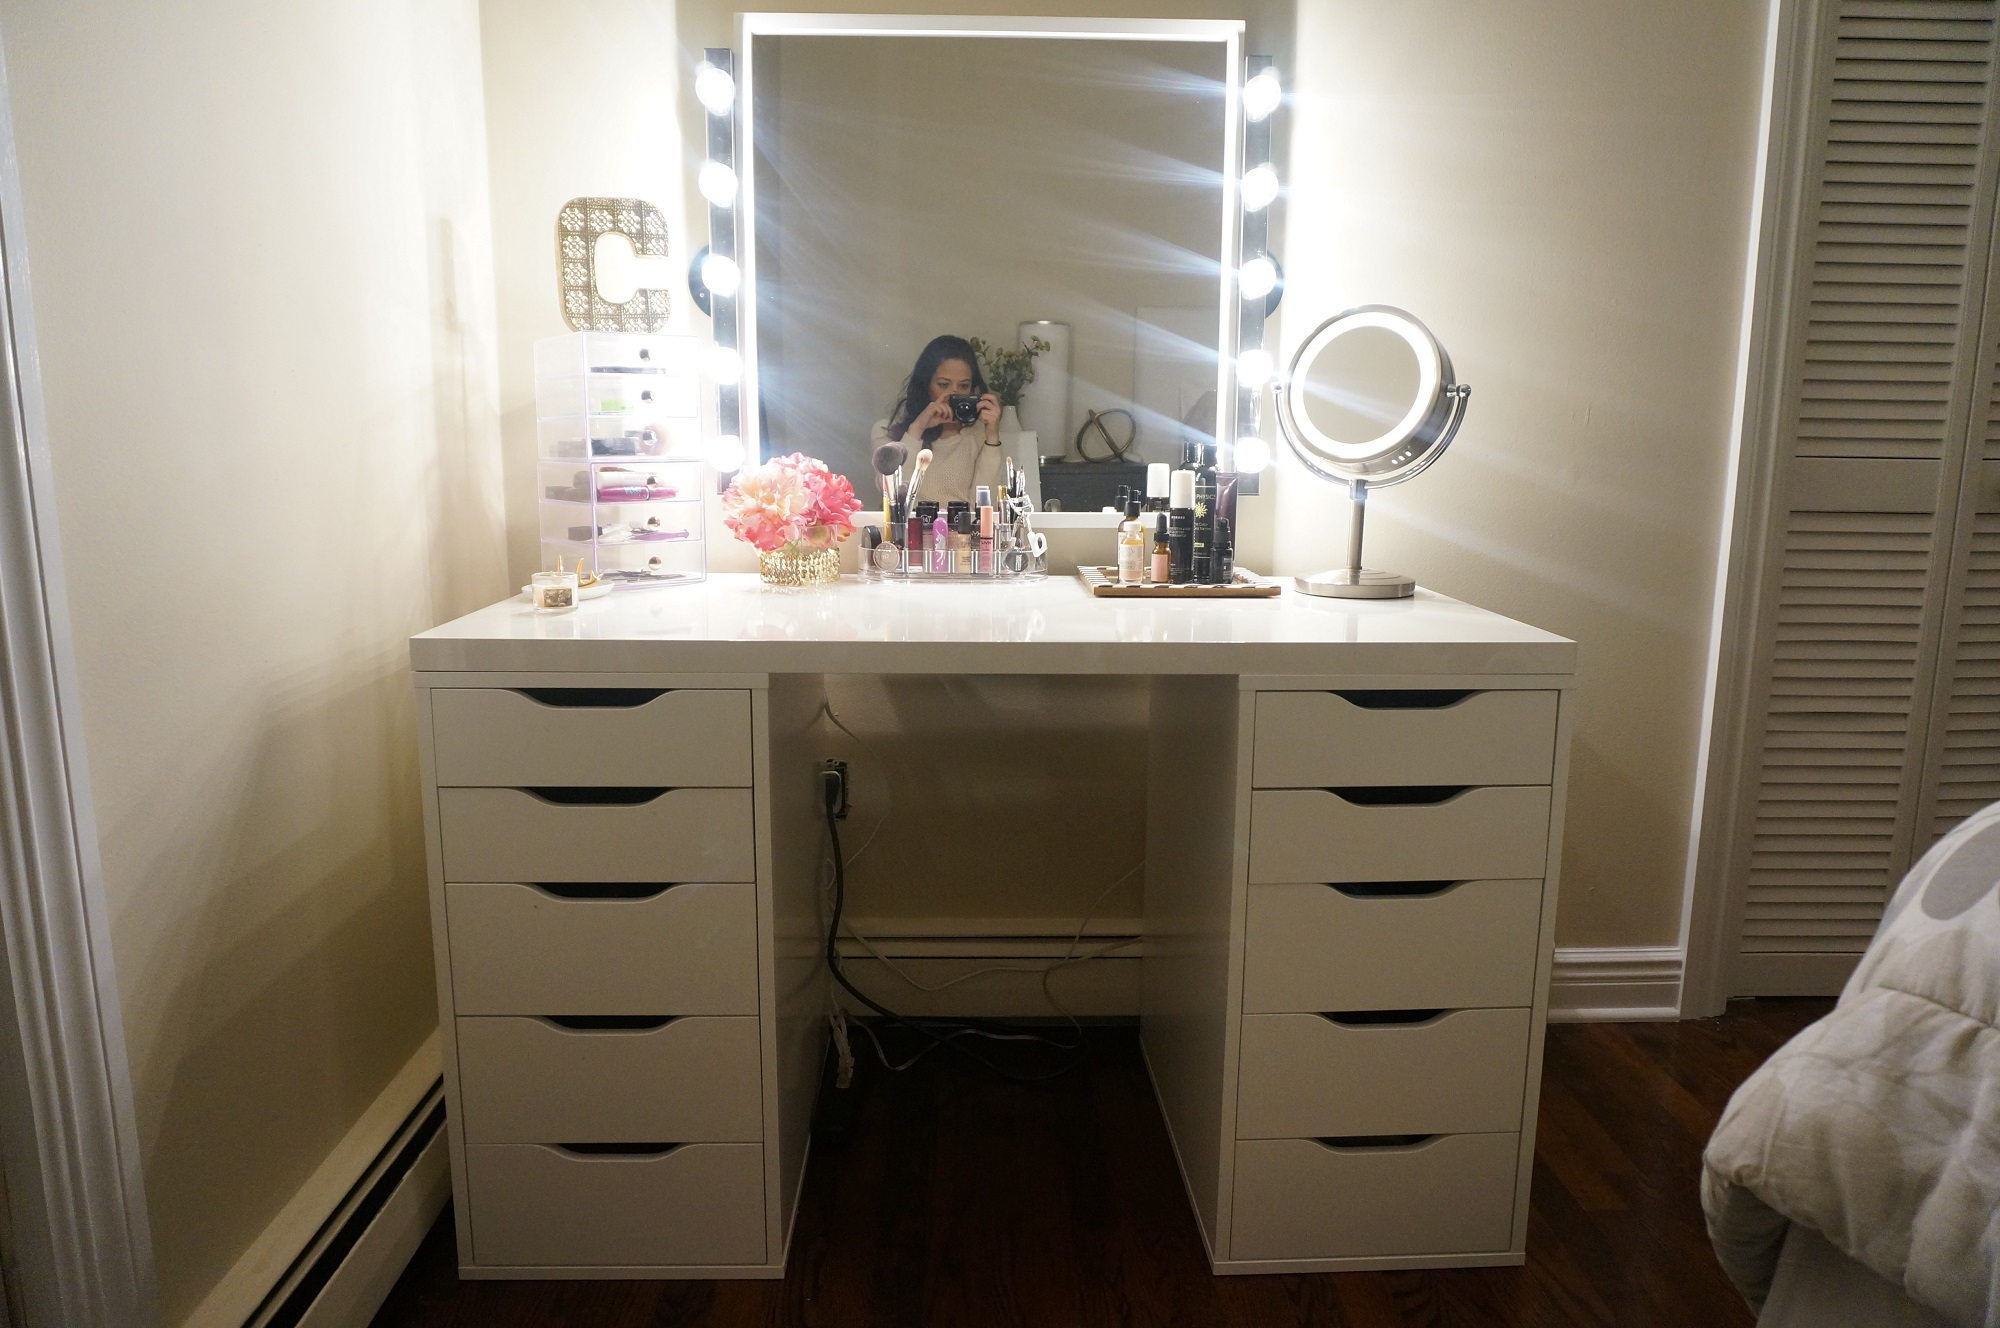 Mirrored Vanity Set | Bedroom Set with Vanity | Mirrored Vanity Dressing Table